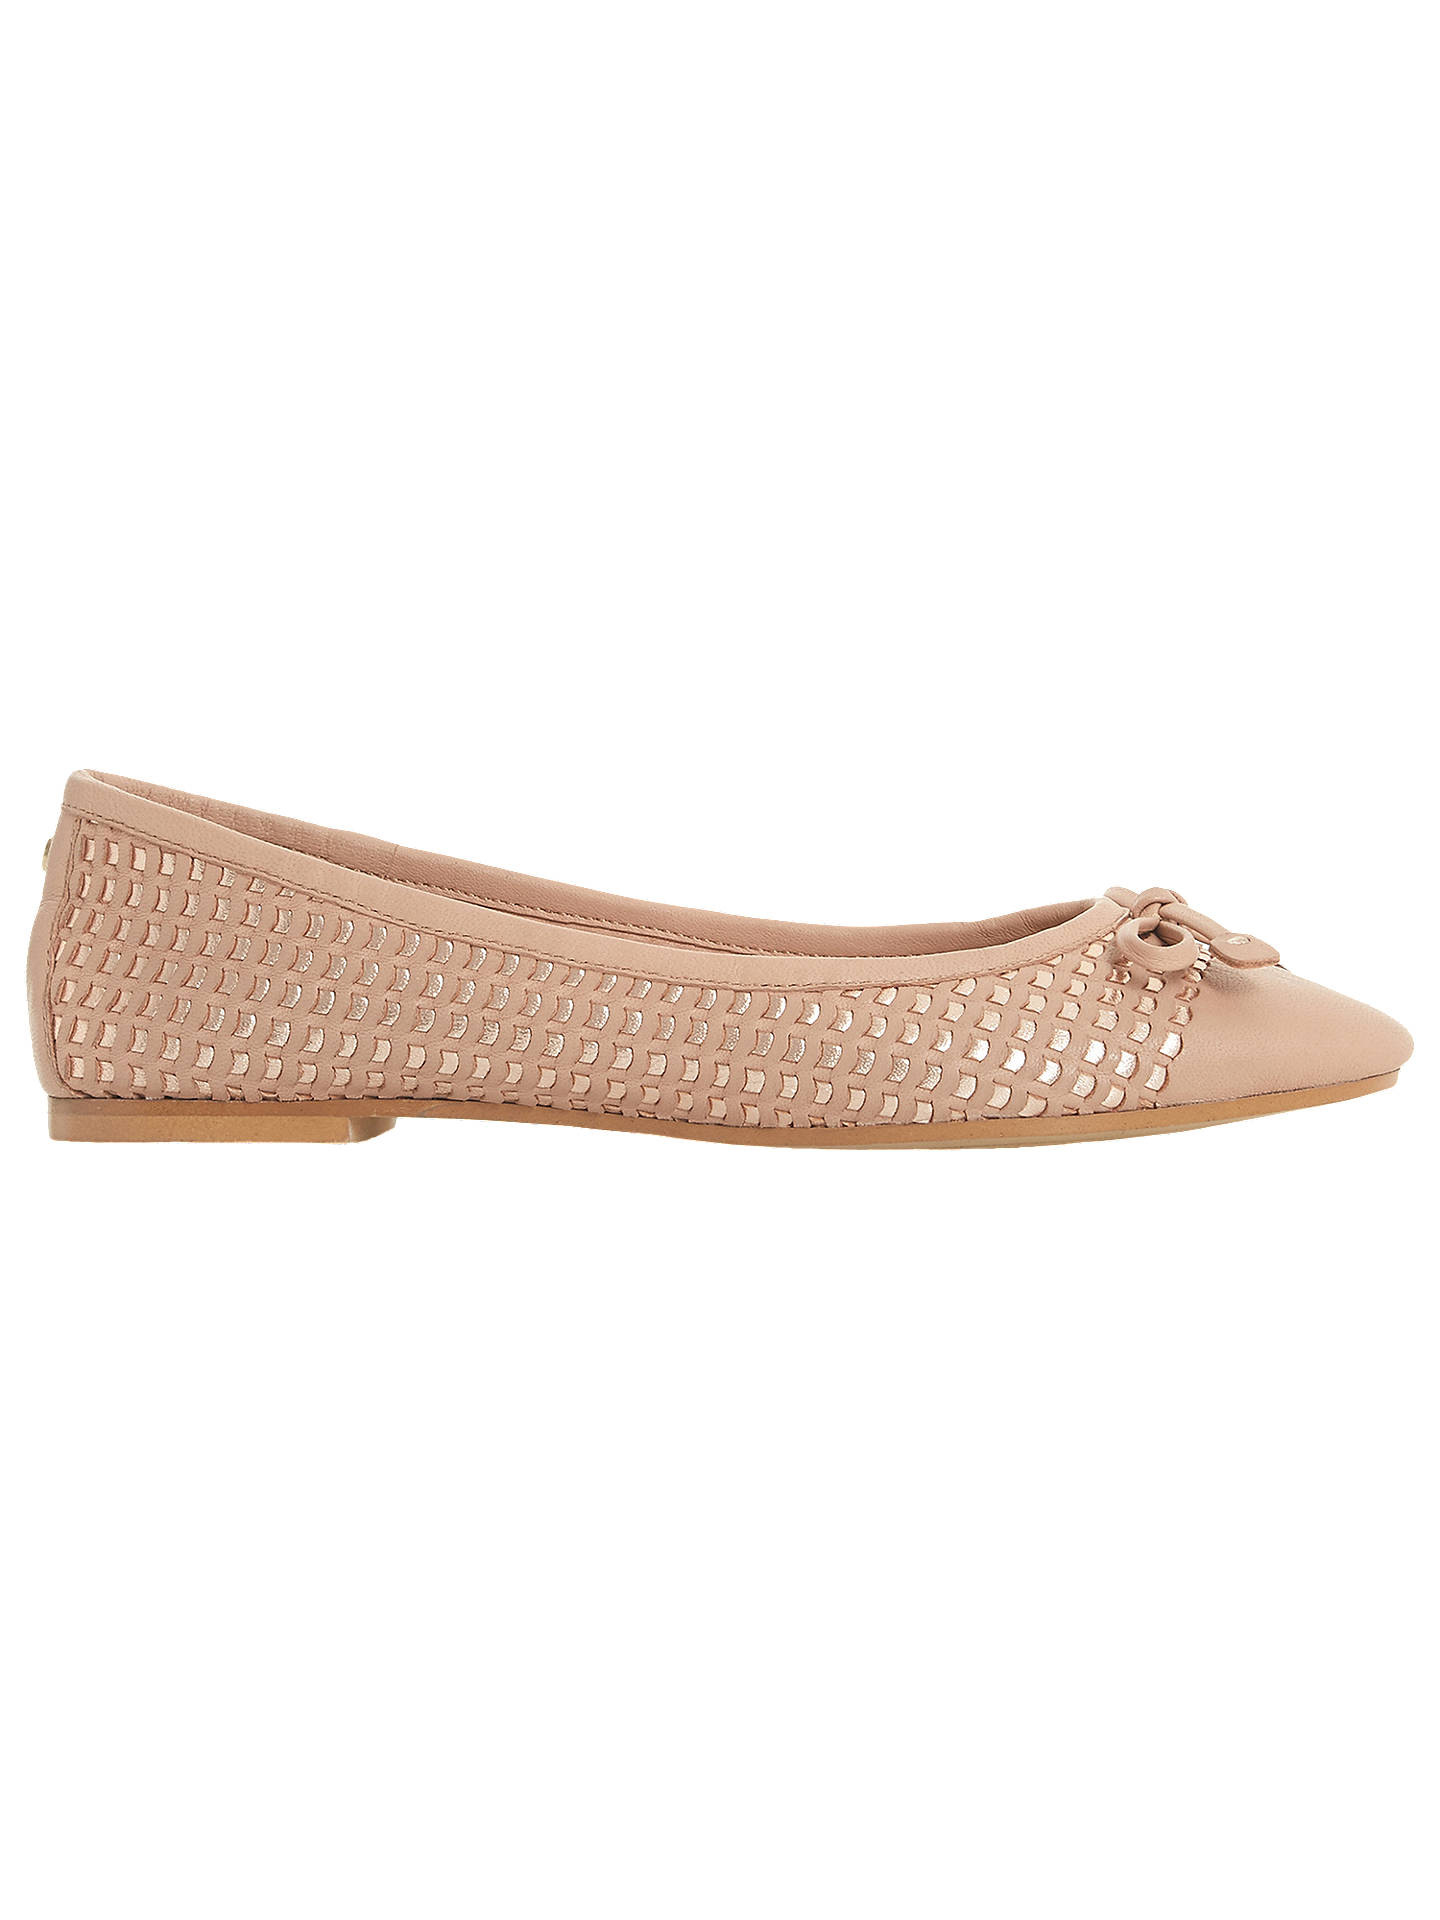 BuyDune Hennah Woven Ballet Pumps, Nude Leather, 3 Online at johnlewis.com